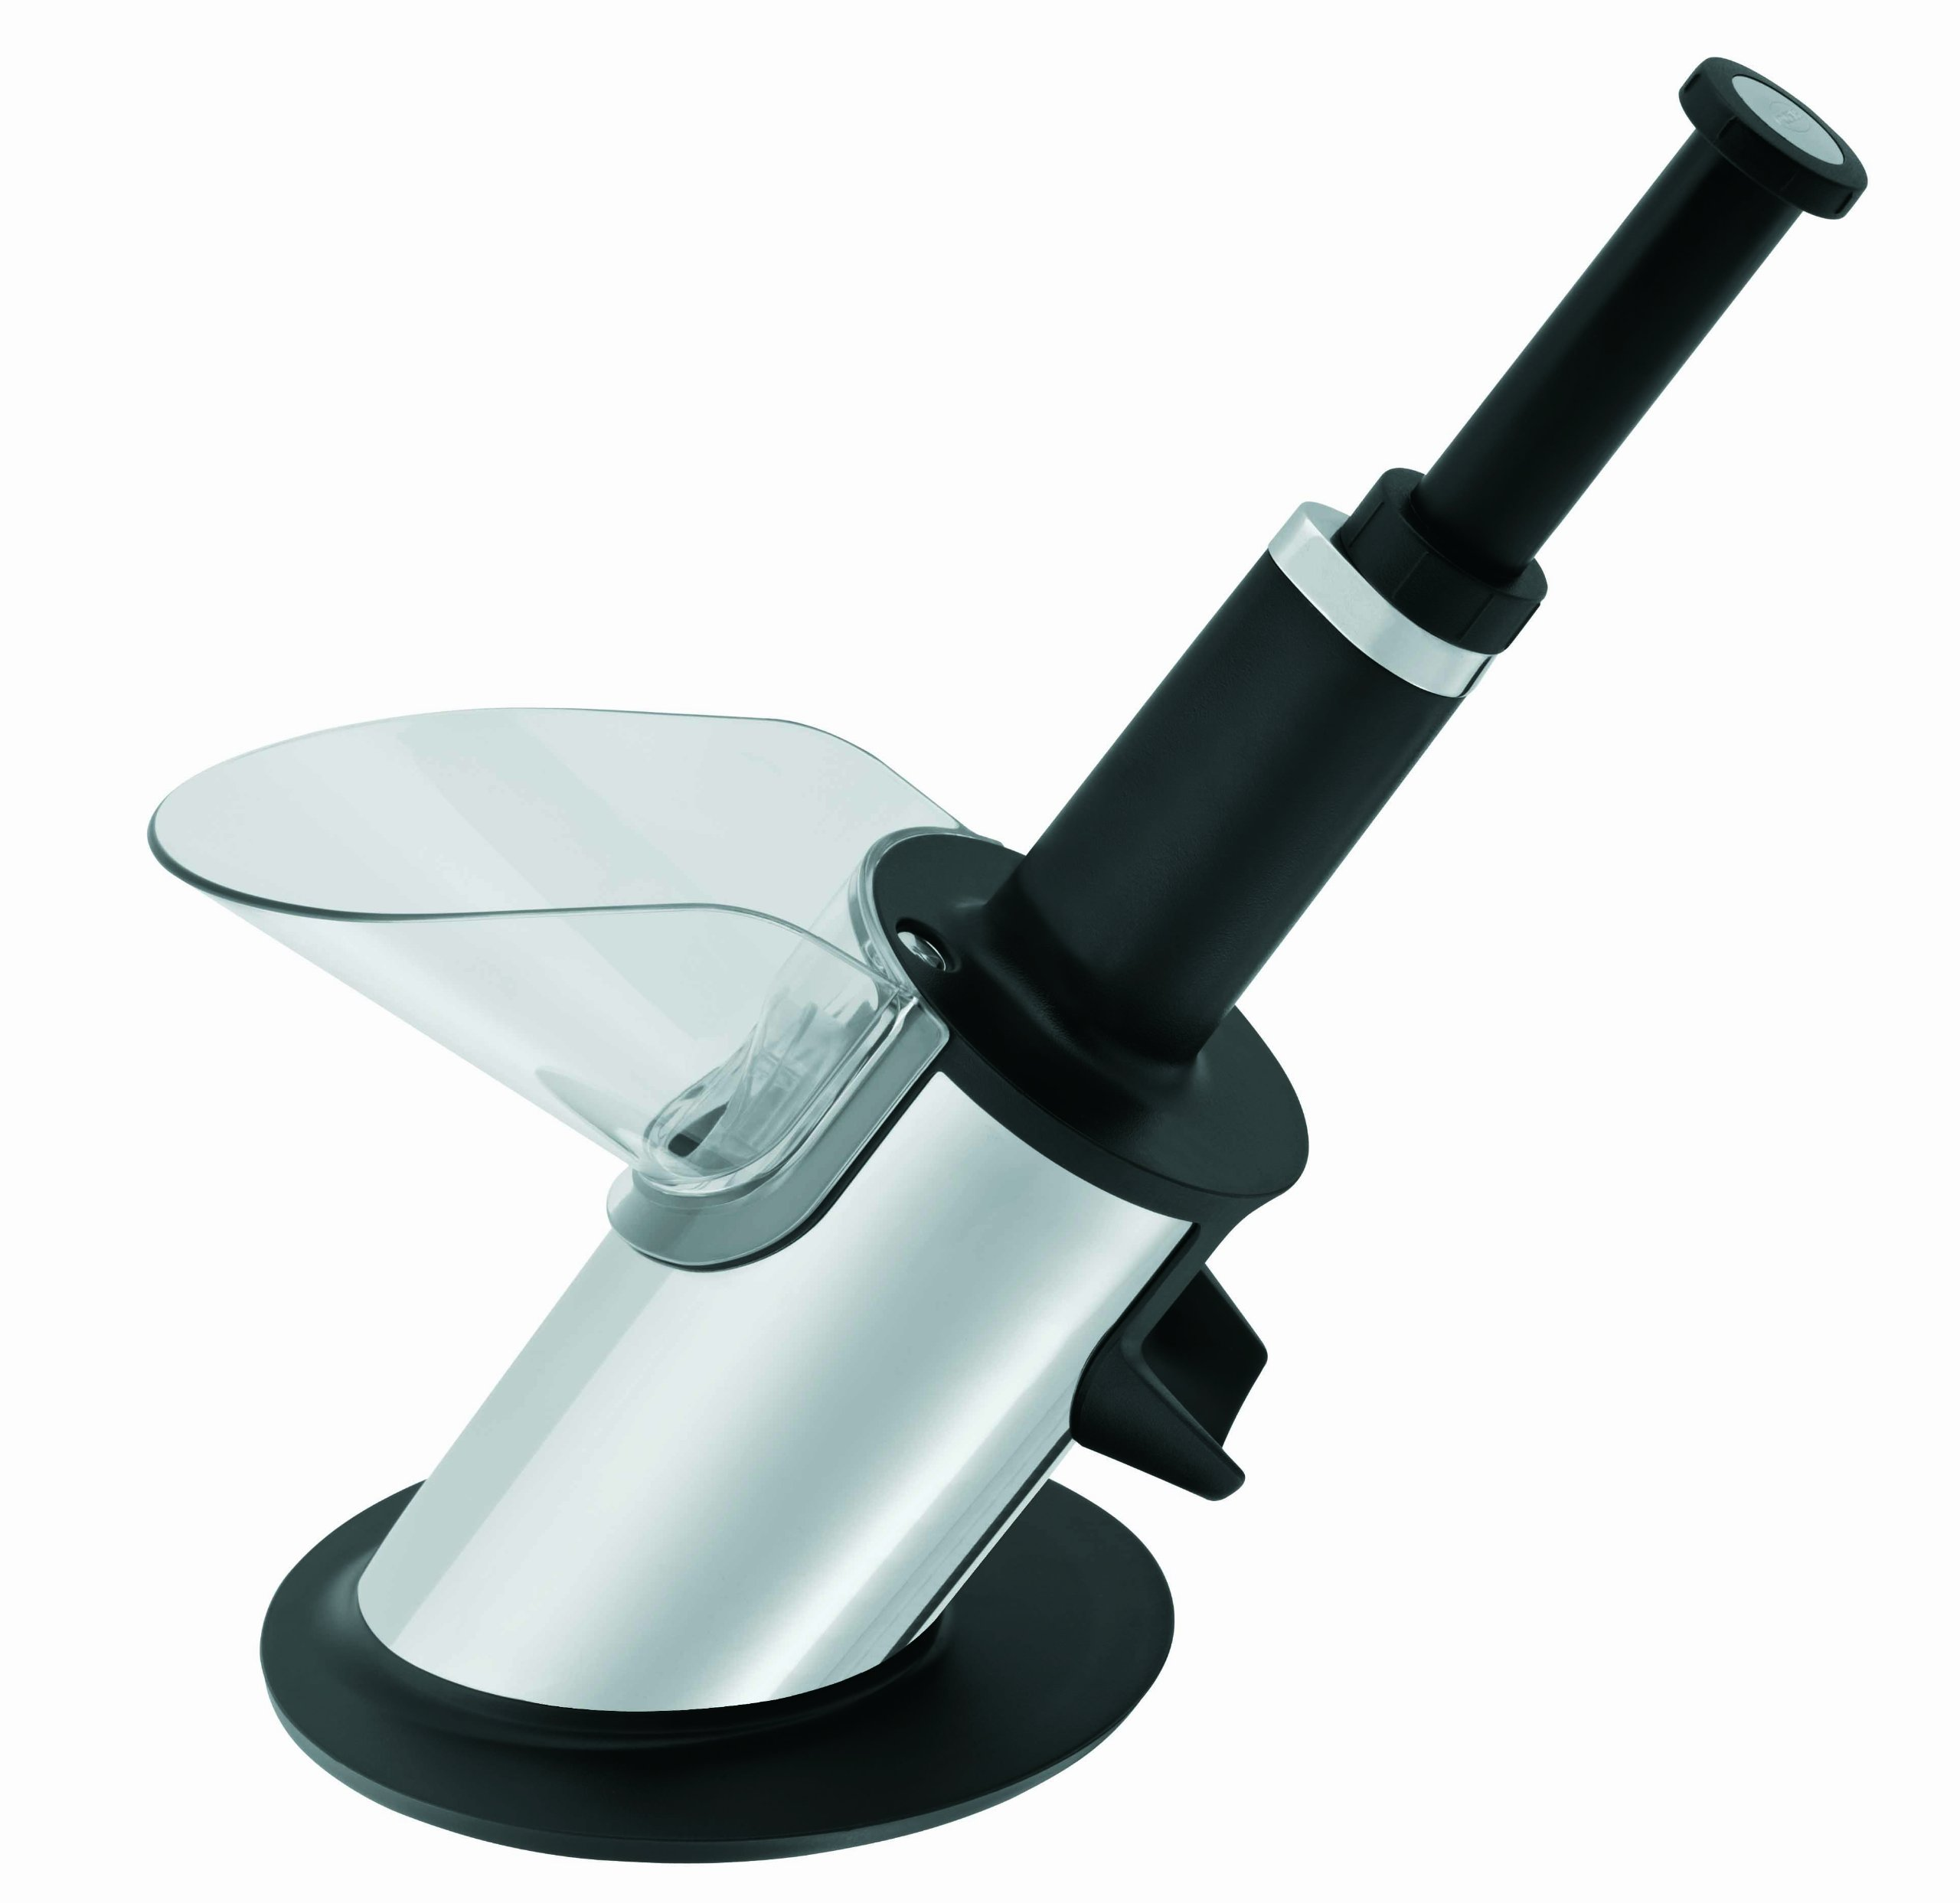 Rösle Stainless Steel Cherry Pitter, Silver